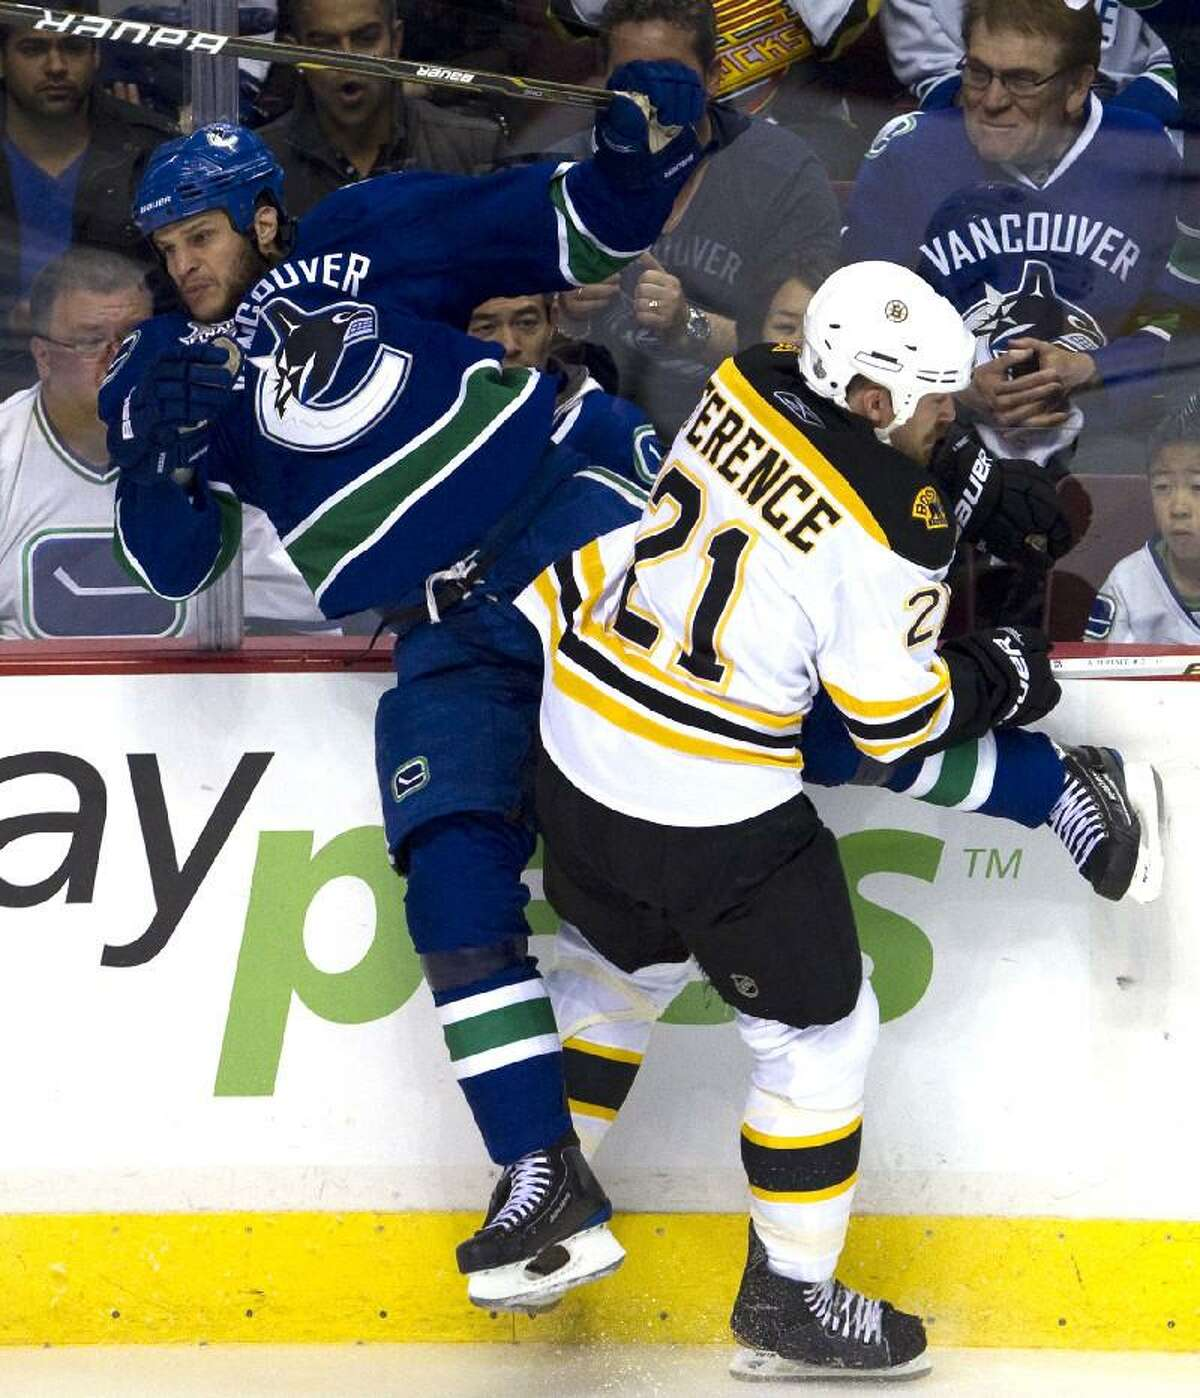 ASSOCIATED PRESS Vancouver's Kevin Bieksa, left, is checked by Boston's Andrew Ference (21) during the first period of Game 1 in the Stanley Cup finals Wednesday in Vancouver, British Columbia. The Canucks won 1-0 to take a 1-0 lead in the series.